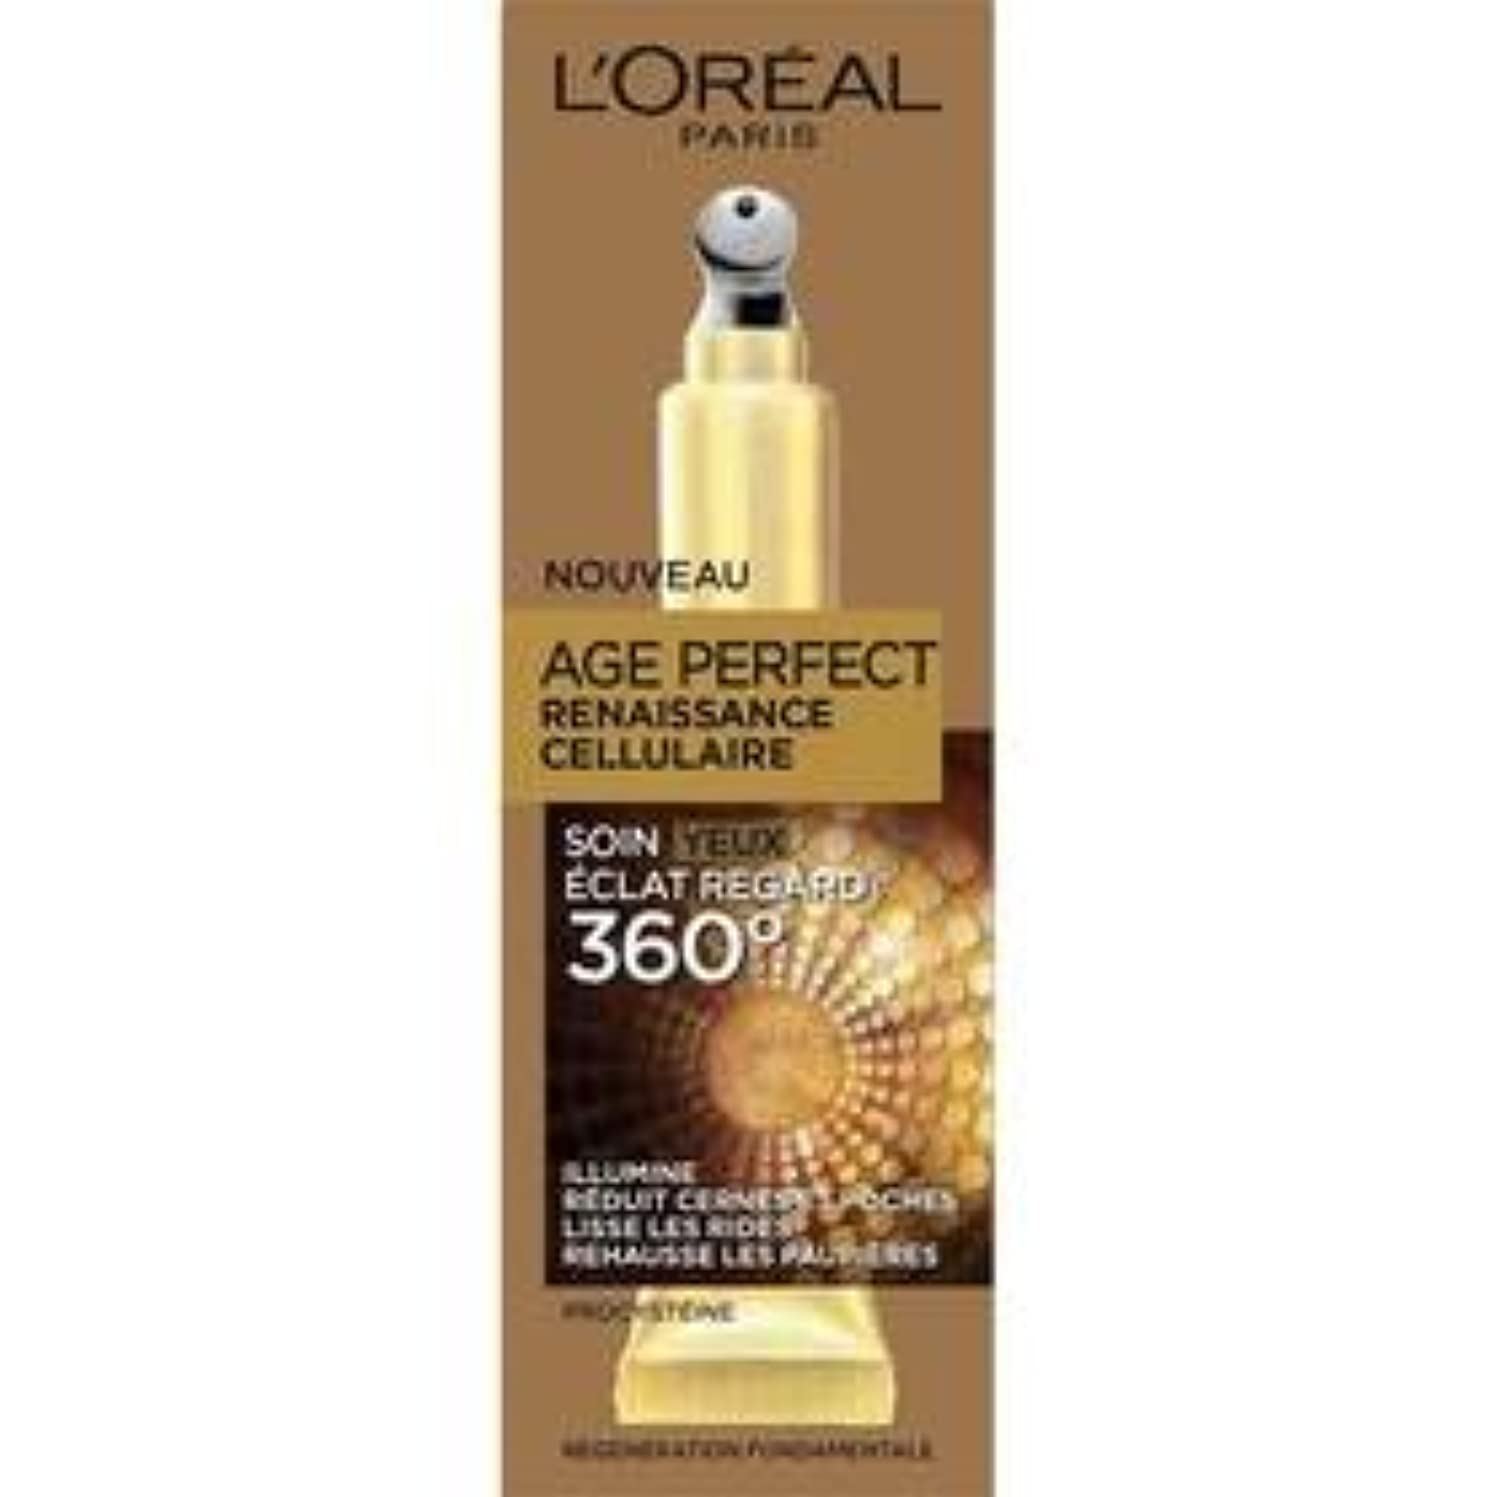 感じる上記の頭と肩ヨーロッパL'oreal age perfect soin yeux renaissance cellulaire 360° 15ml- (for multi-item order extra postage cost will...